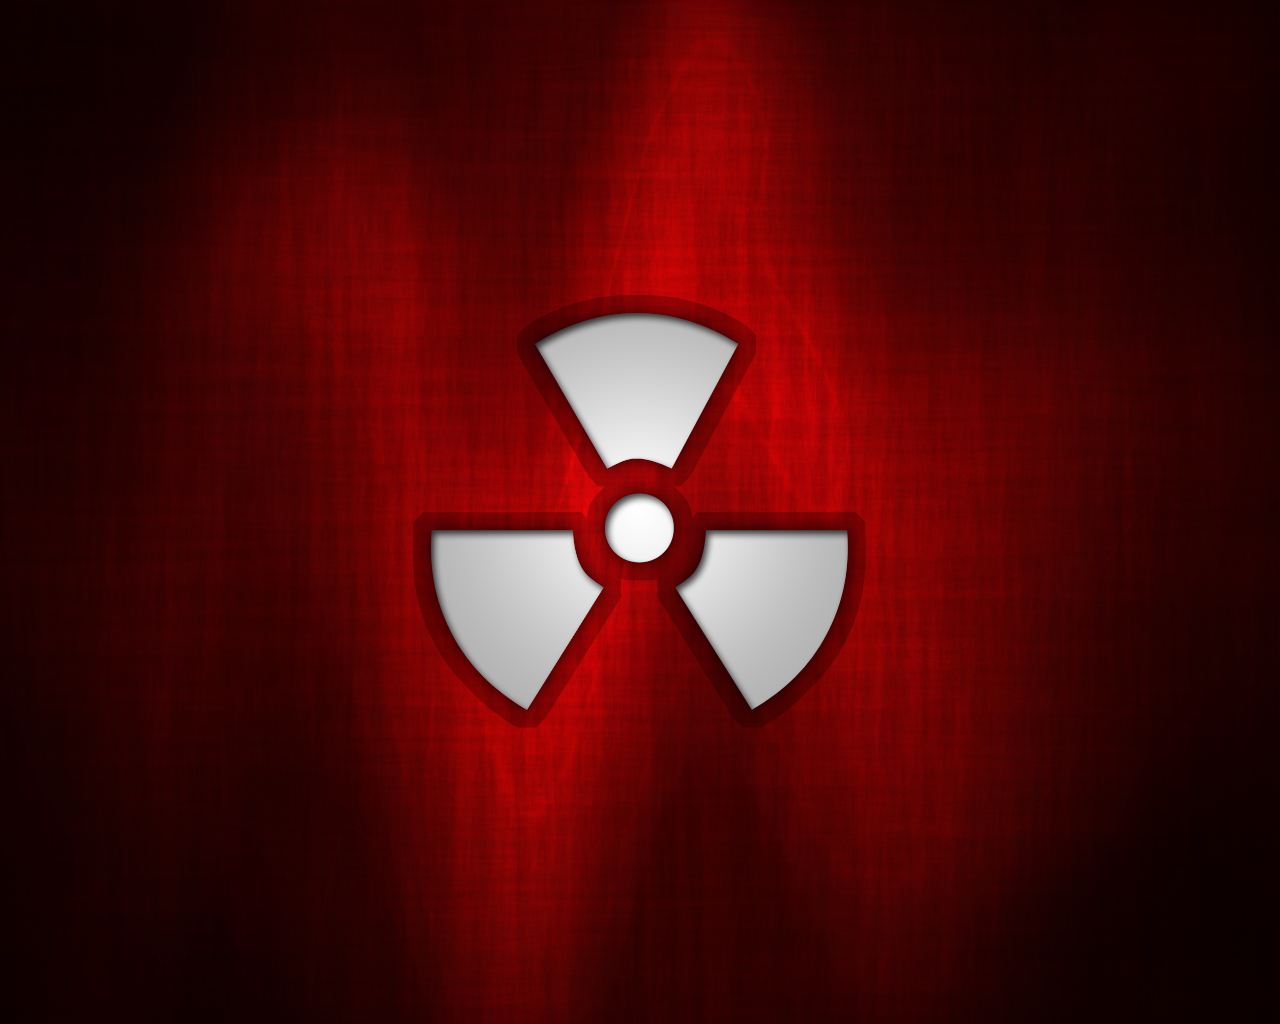 Awesome HD Wallpapers Collection of Nuclear - 1280x1024 px, 06/06/2016